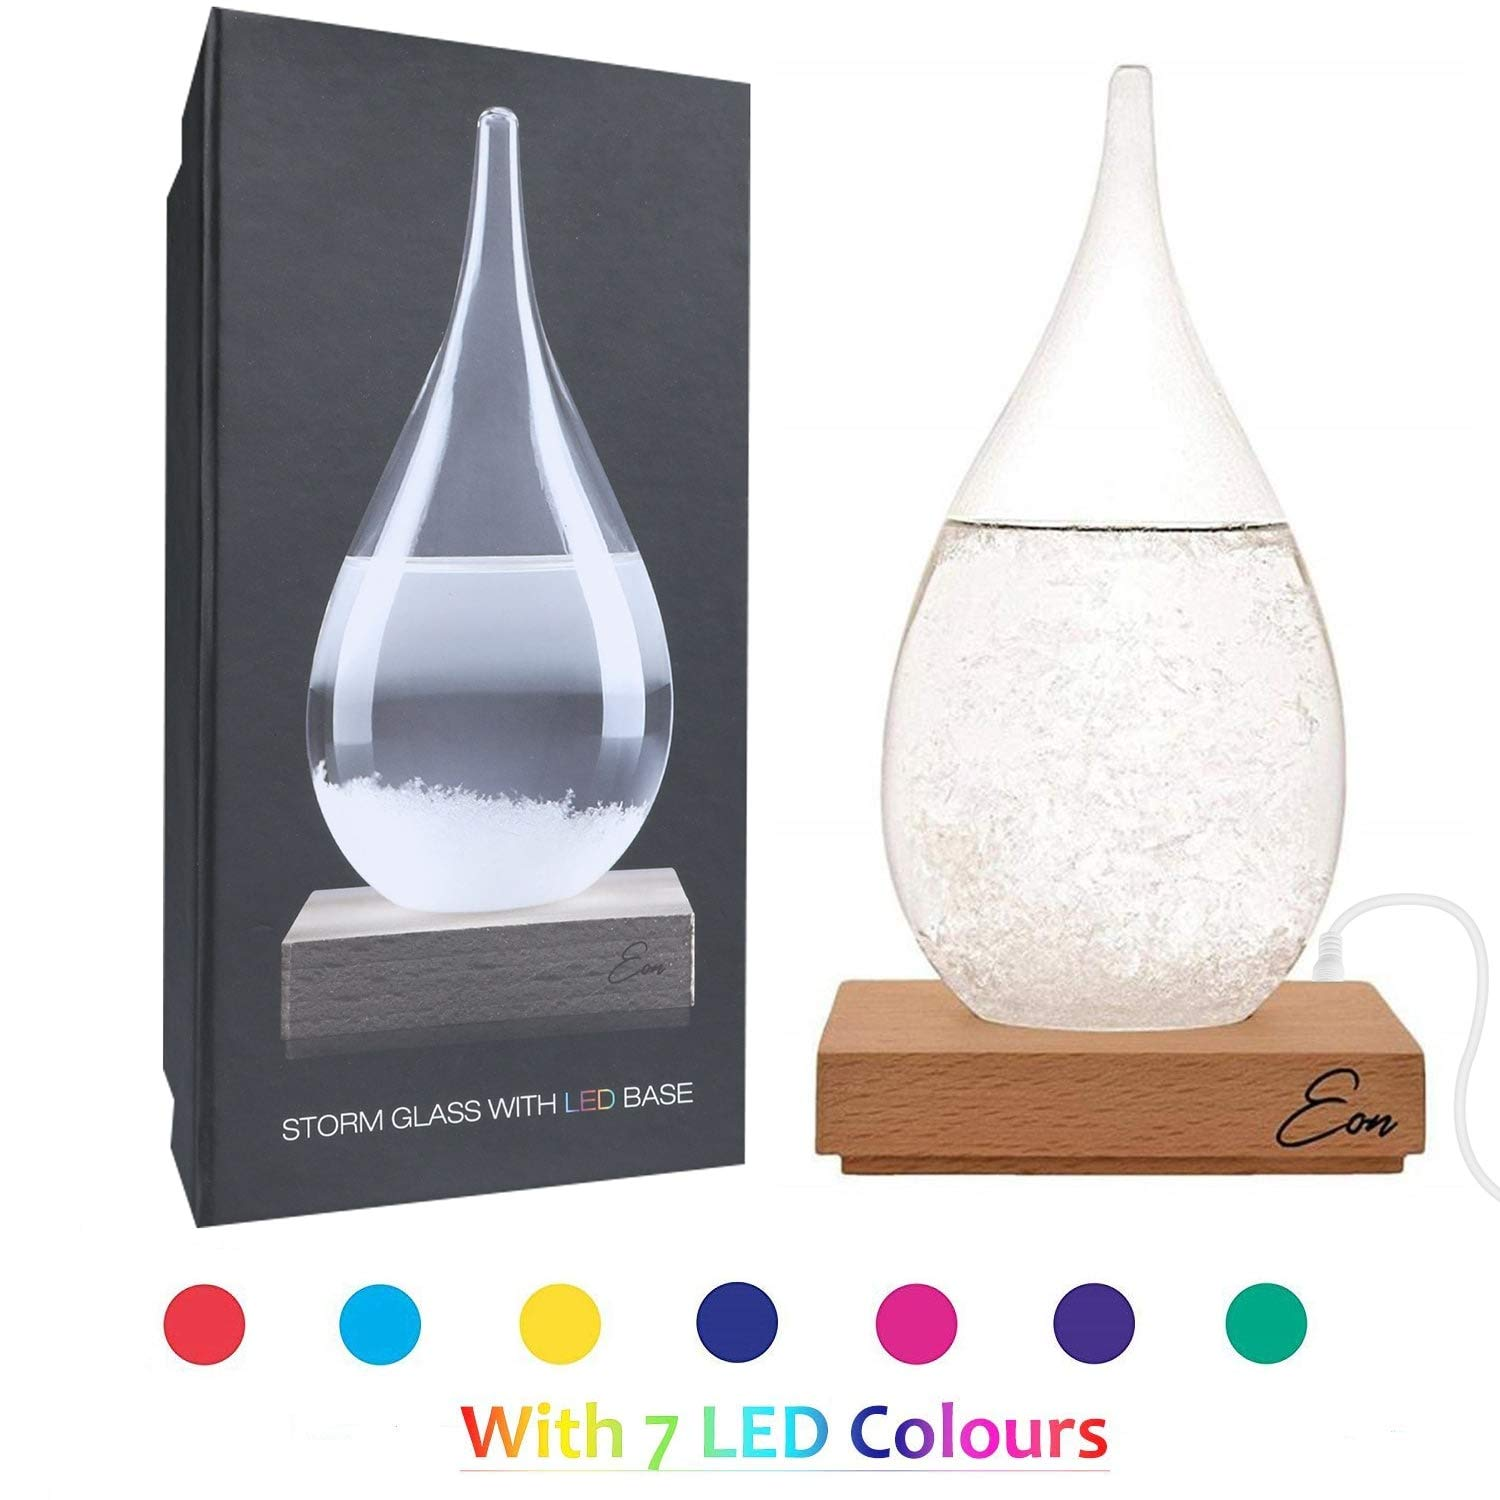 Eon Concepts Storm Glass Weather Predictor - Barometer Bottle with Stunning & Colorful LED Wood Base | Decorative Centerpiece for Home & Office | Perfect Birthday Friendship Novelty Unique Gift Idea